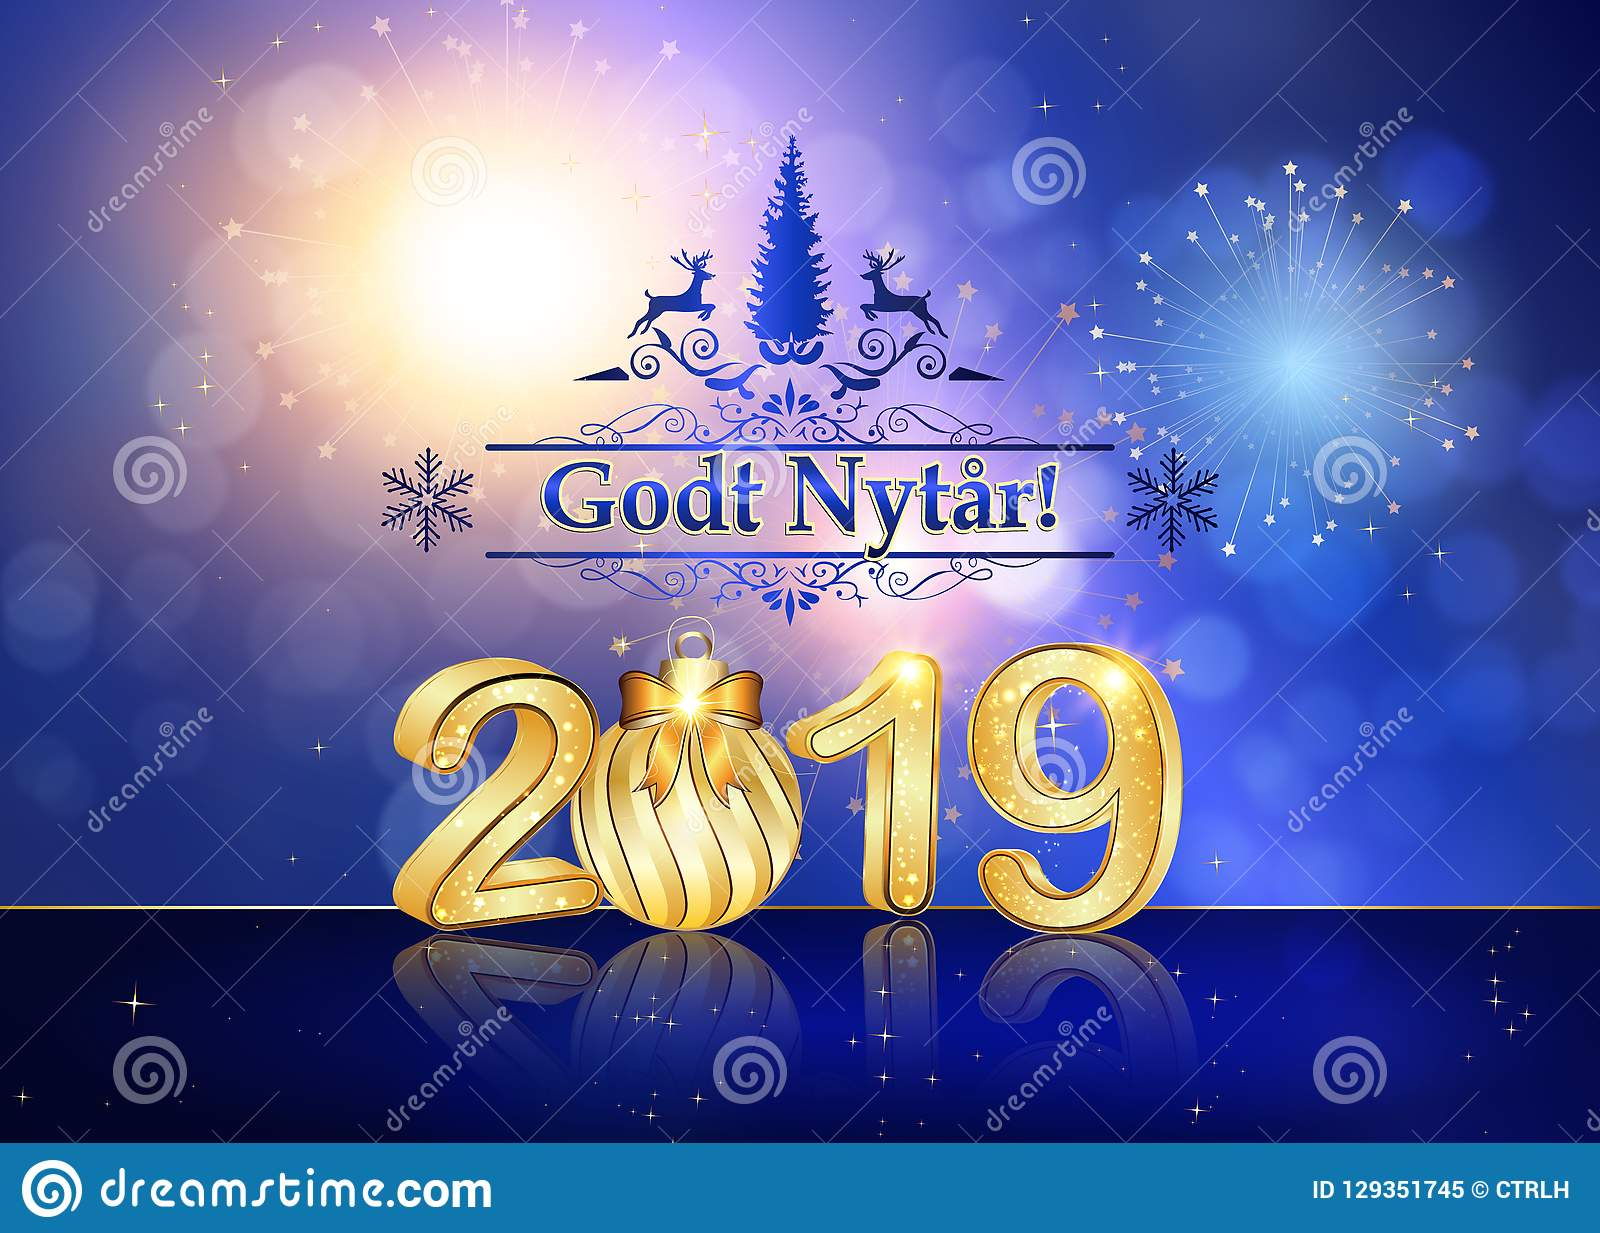 Happy New Year 2019 Greeting Card With Text In Danish Stock Image